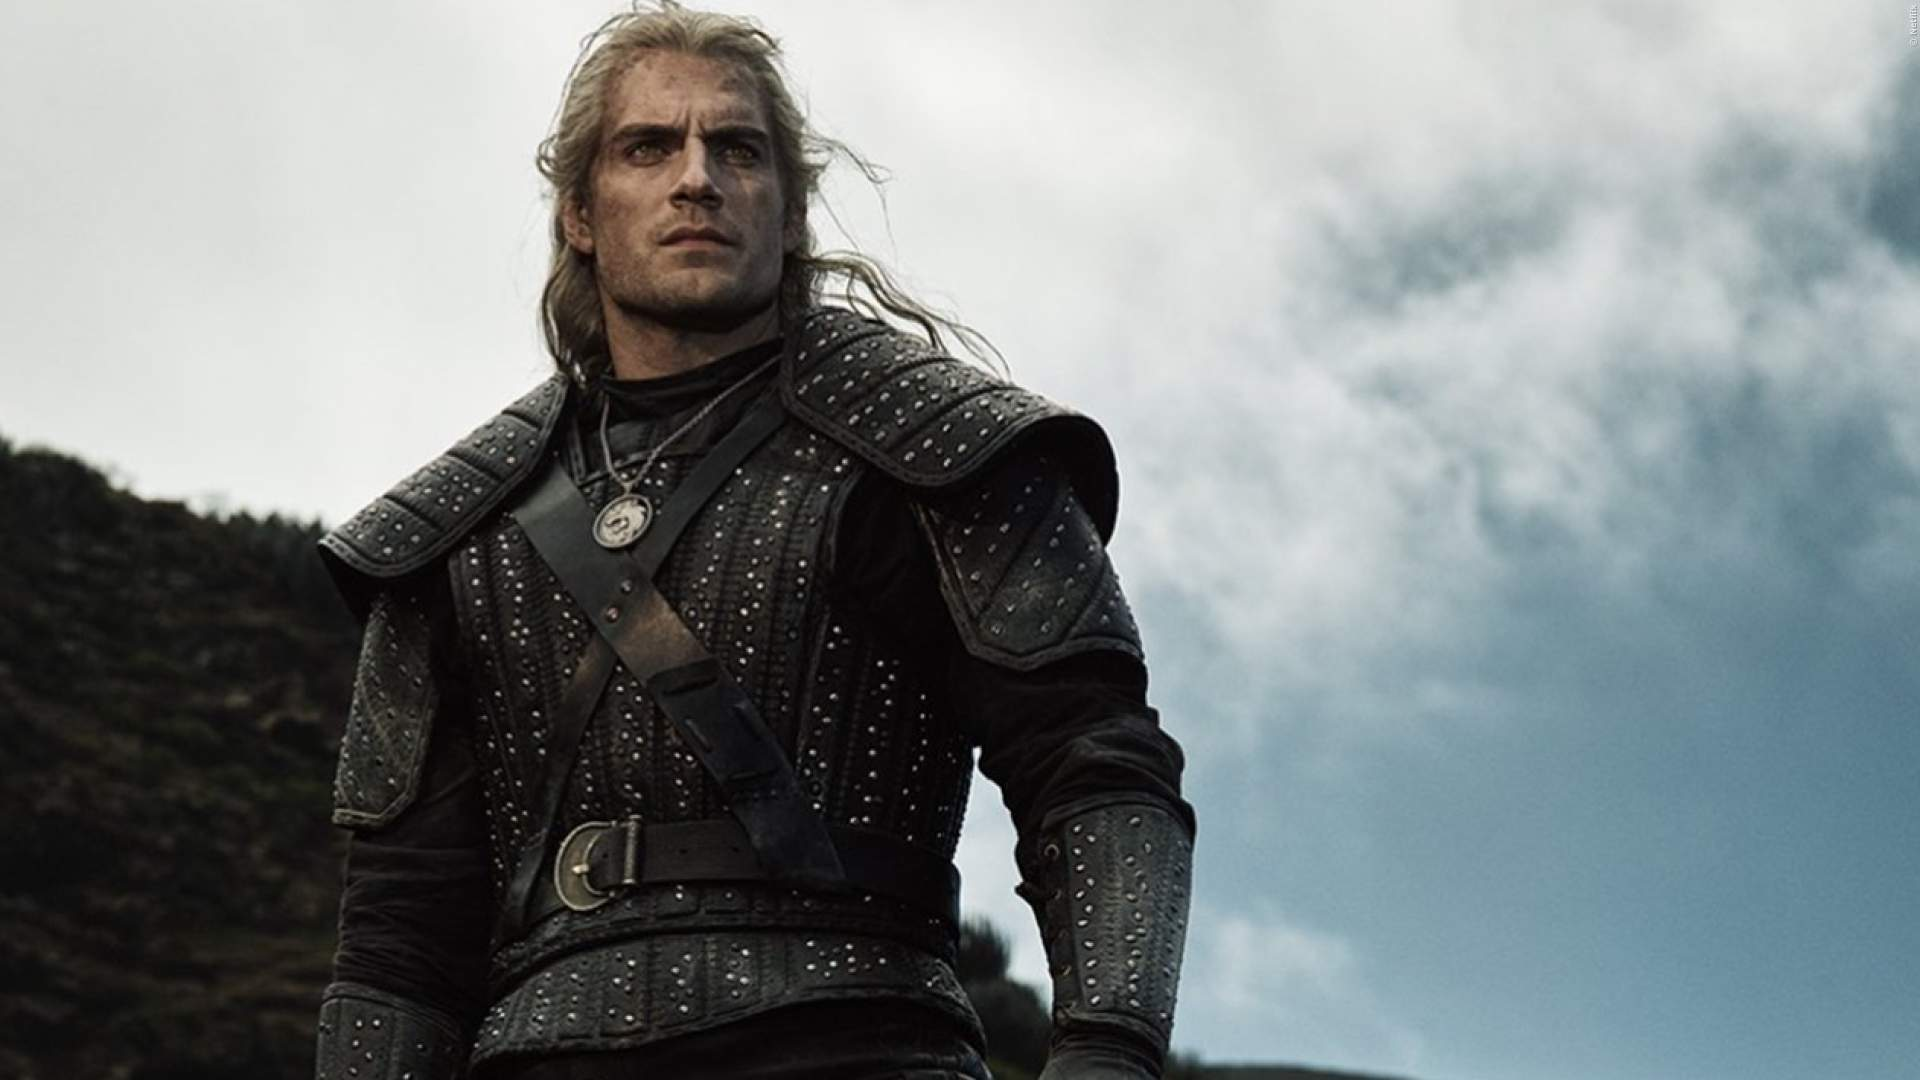 The Witcher Film